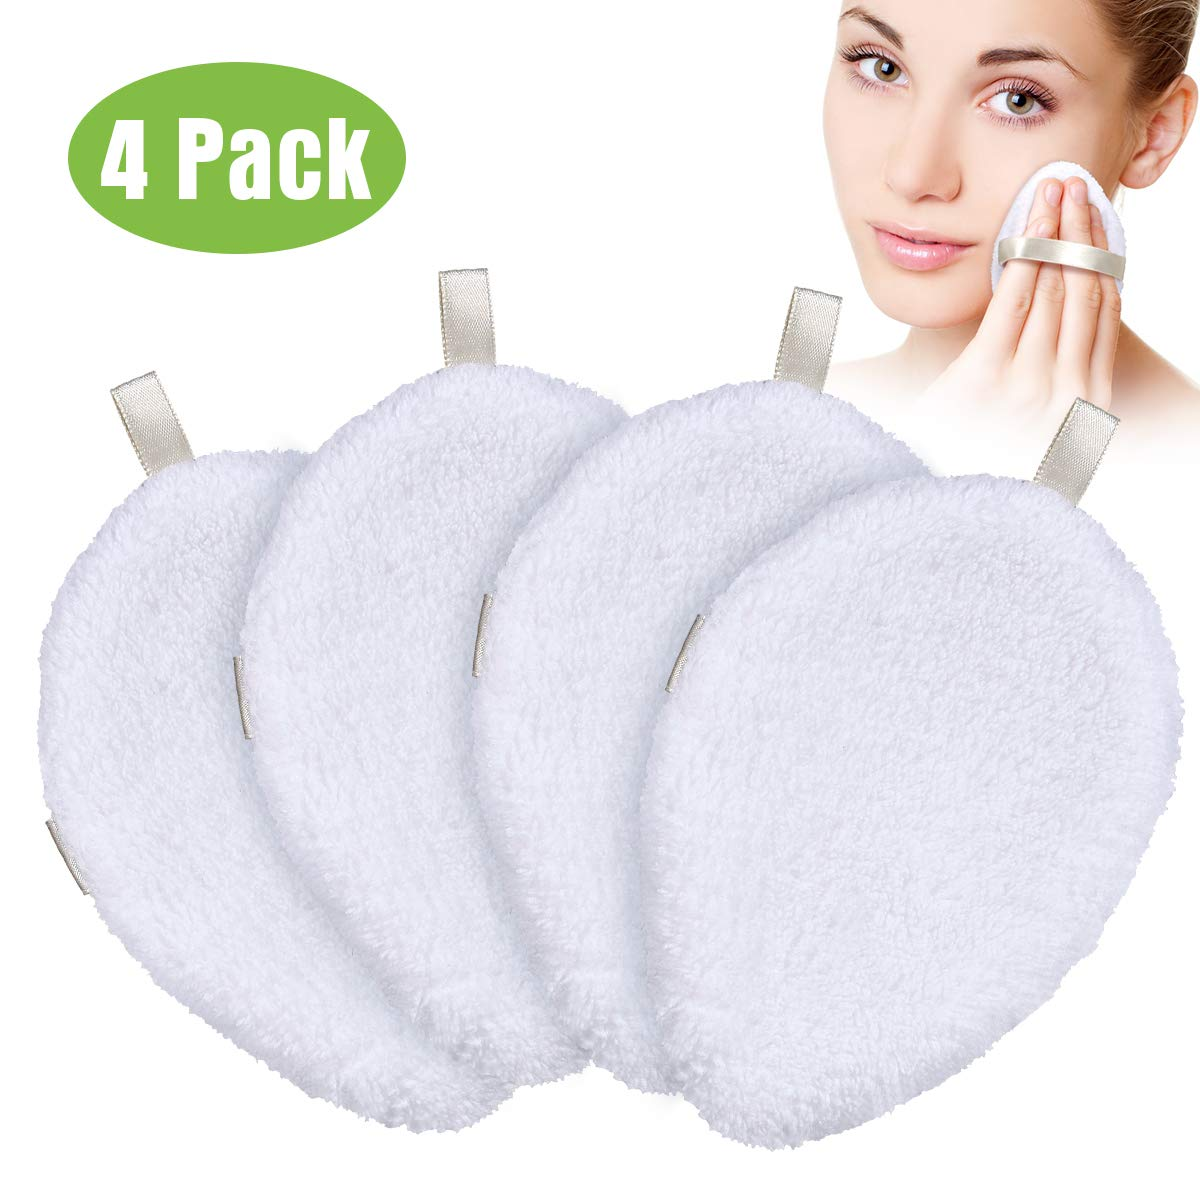 Reusable Makeup Remover Pads, Organic Bamboo Cotton Rounds, Reusable Cotton Pads Face Cleansing Wipes, Christmas Stocking Stuffers Gift for Women Mom Wife Sister Teen Girl Friend